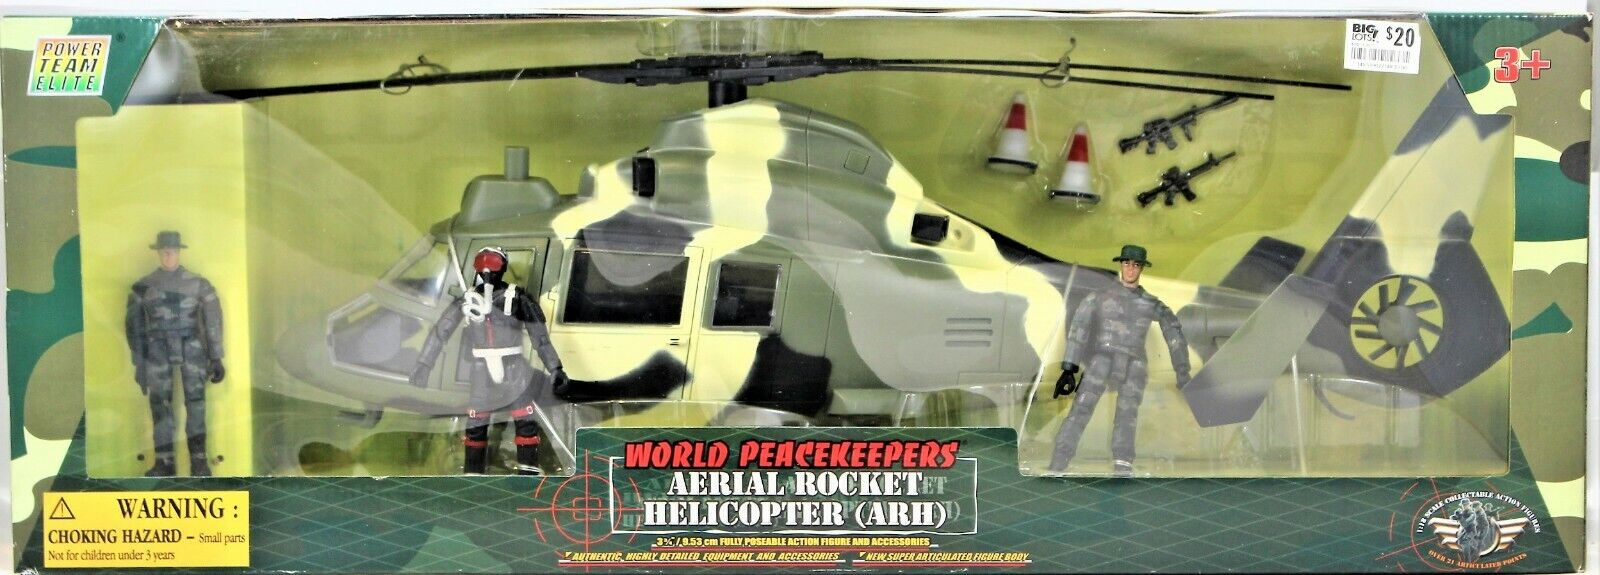 Power Team Elite World Peace Keepers - Aerial Rocket Helicop